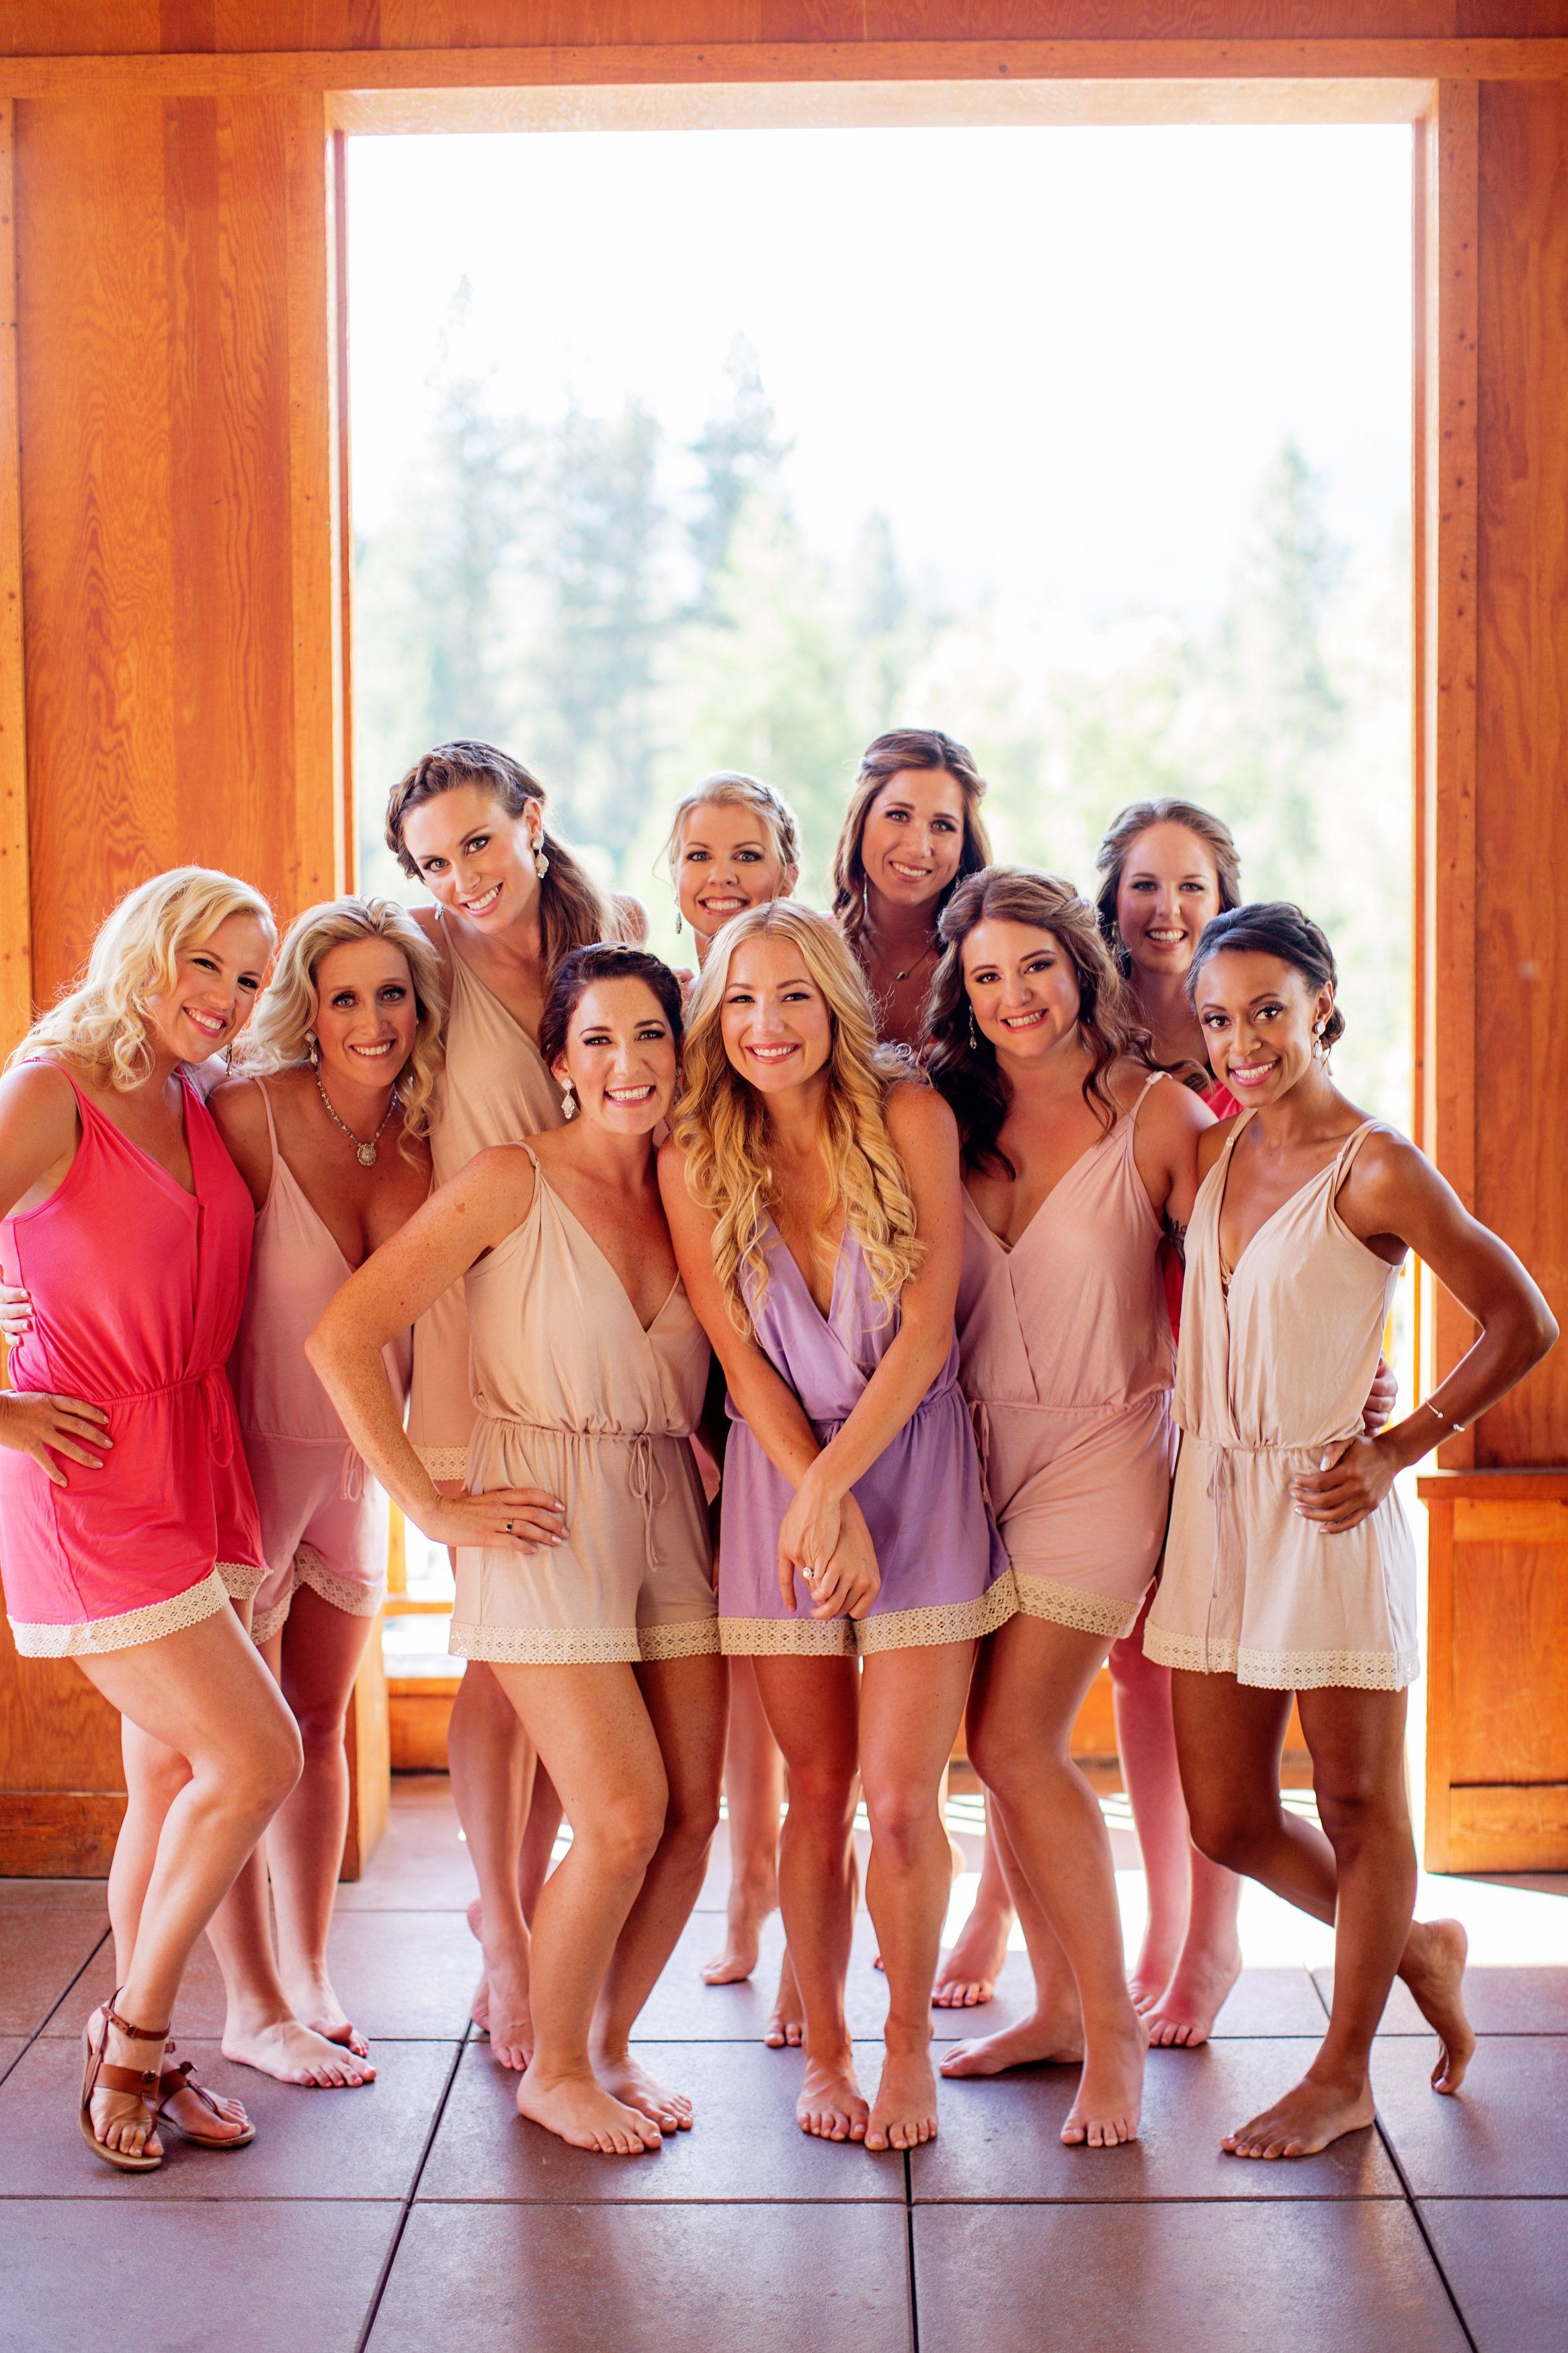 Bridal Designer Hayley Paige And Her Bridesmaids All In Love Ophelia Rompers Photo Credit To